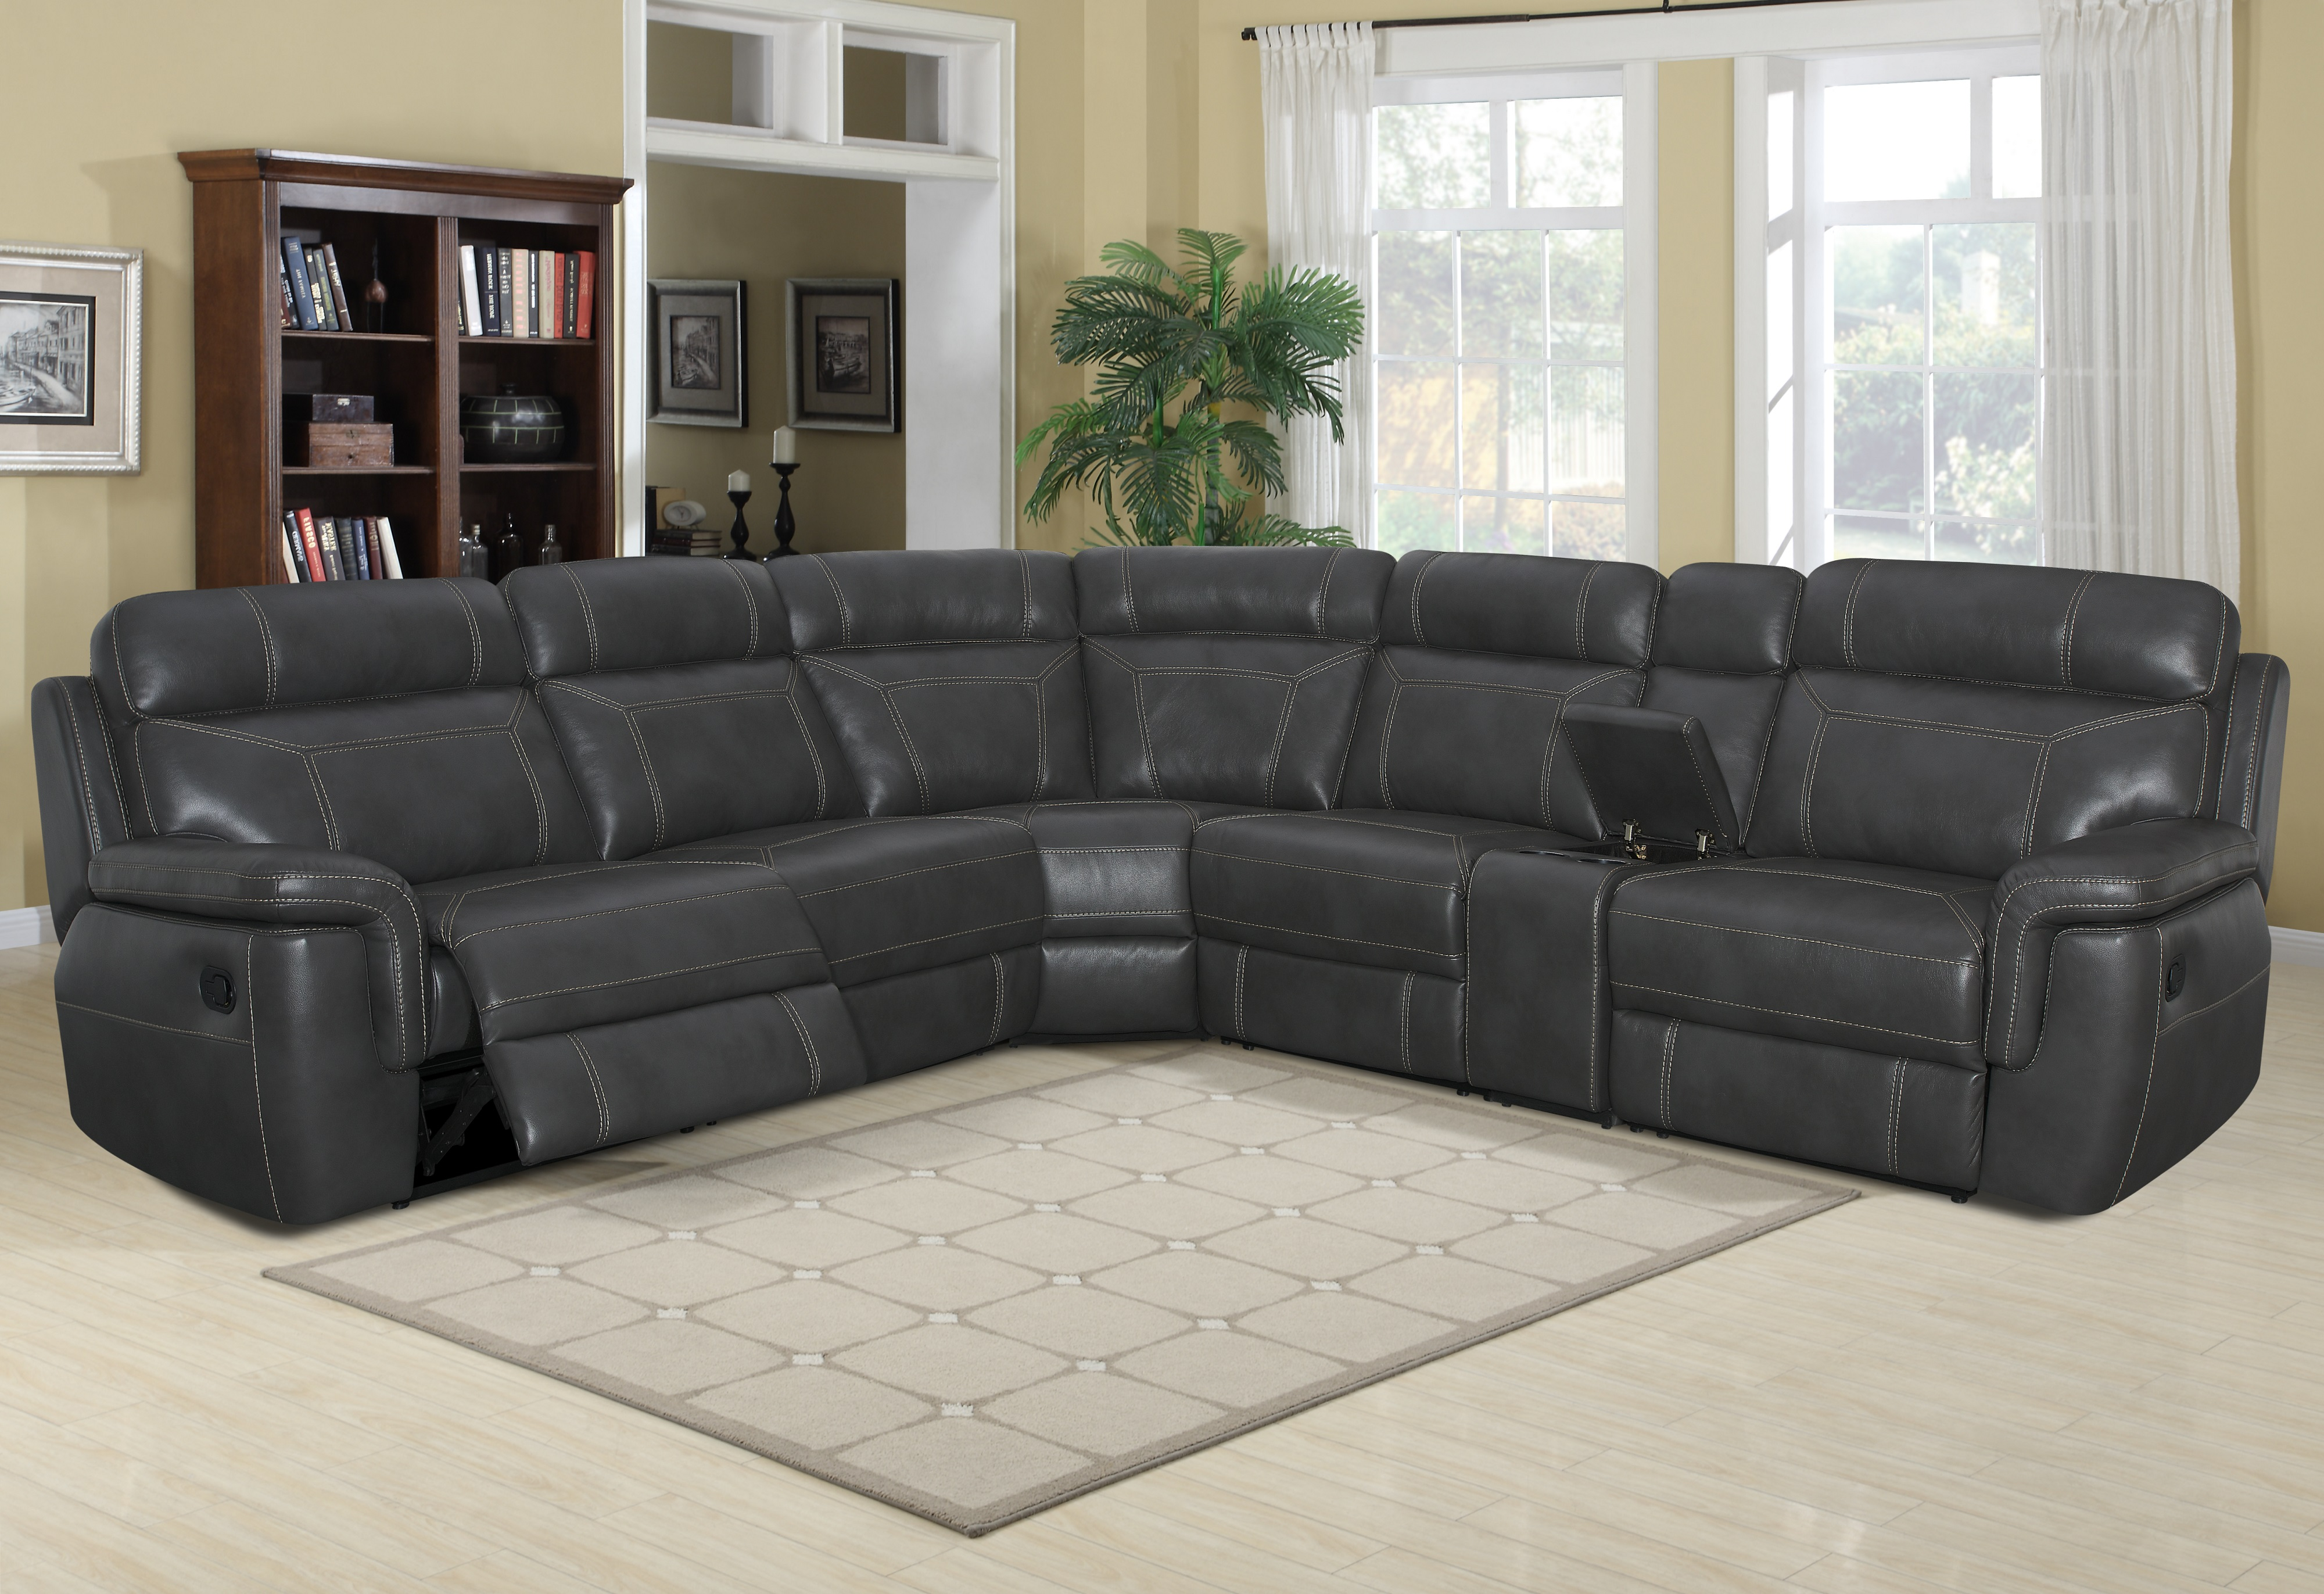 Silas Reclining Sectional Image